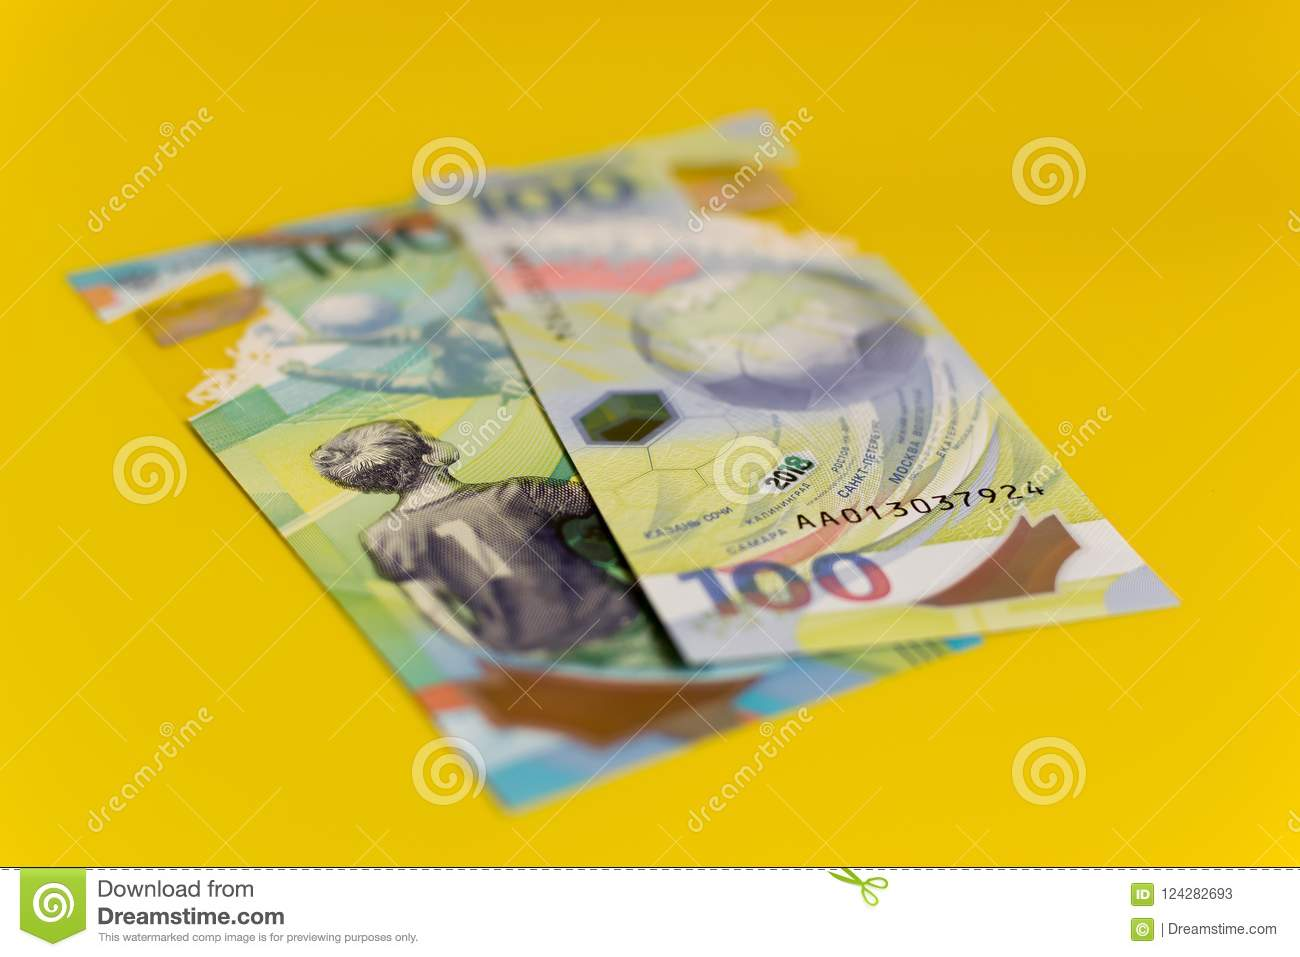 New Russian hundred rubles